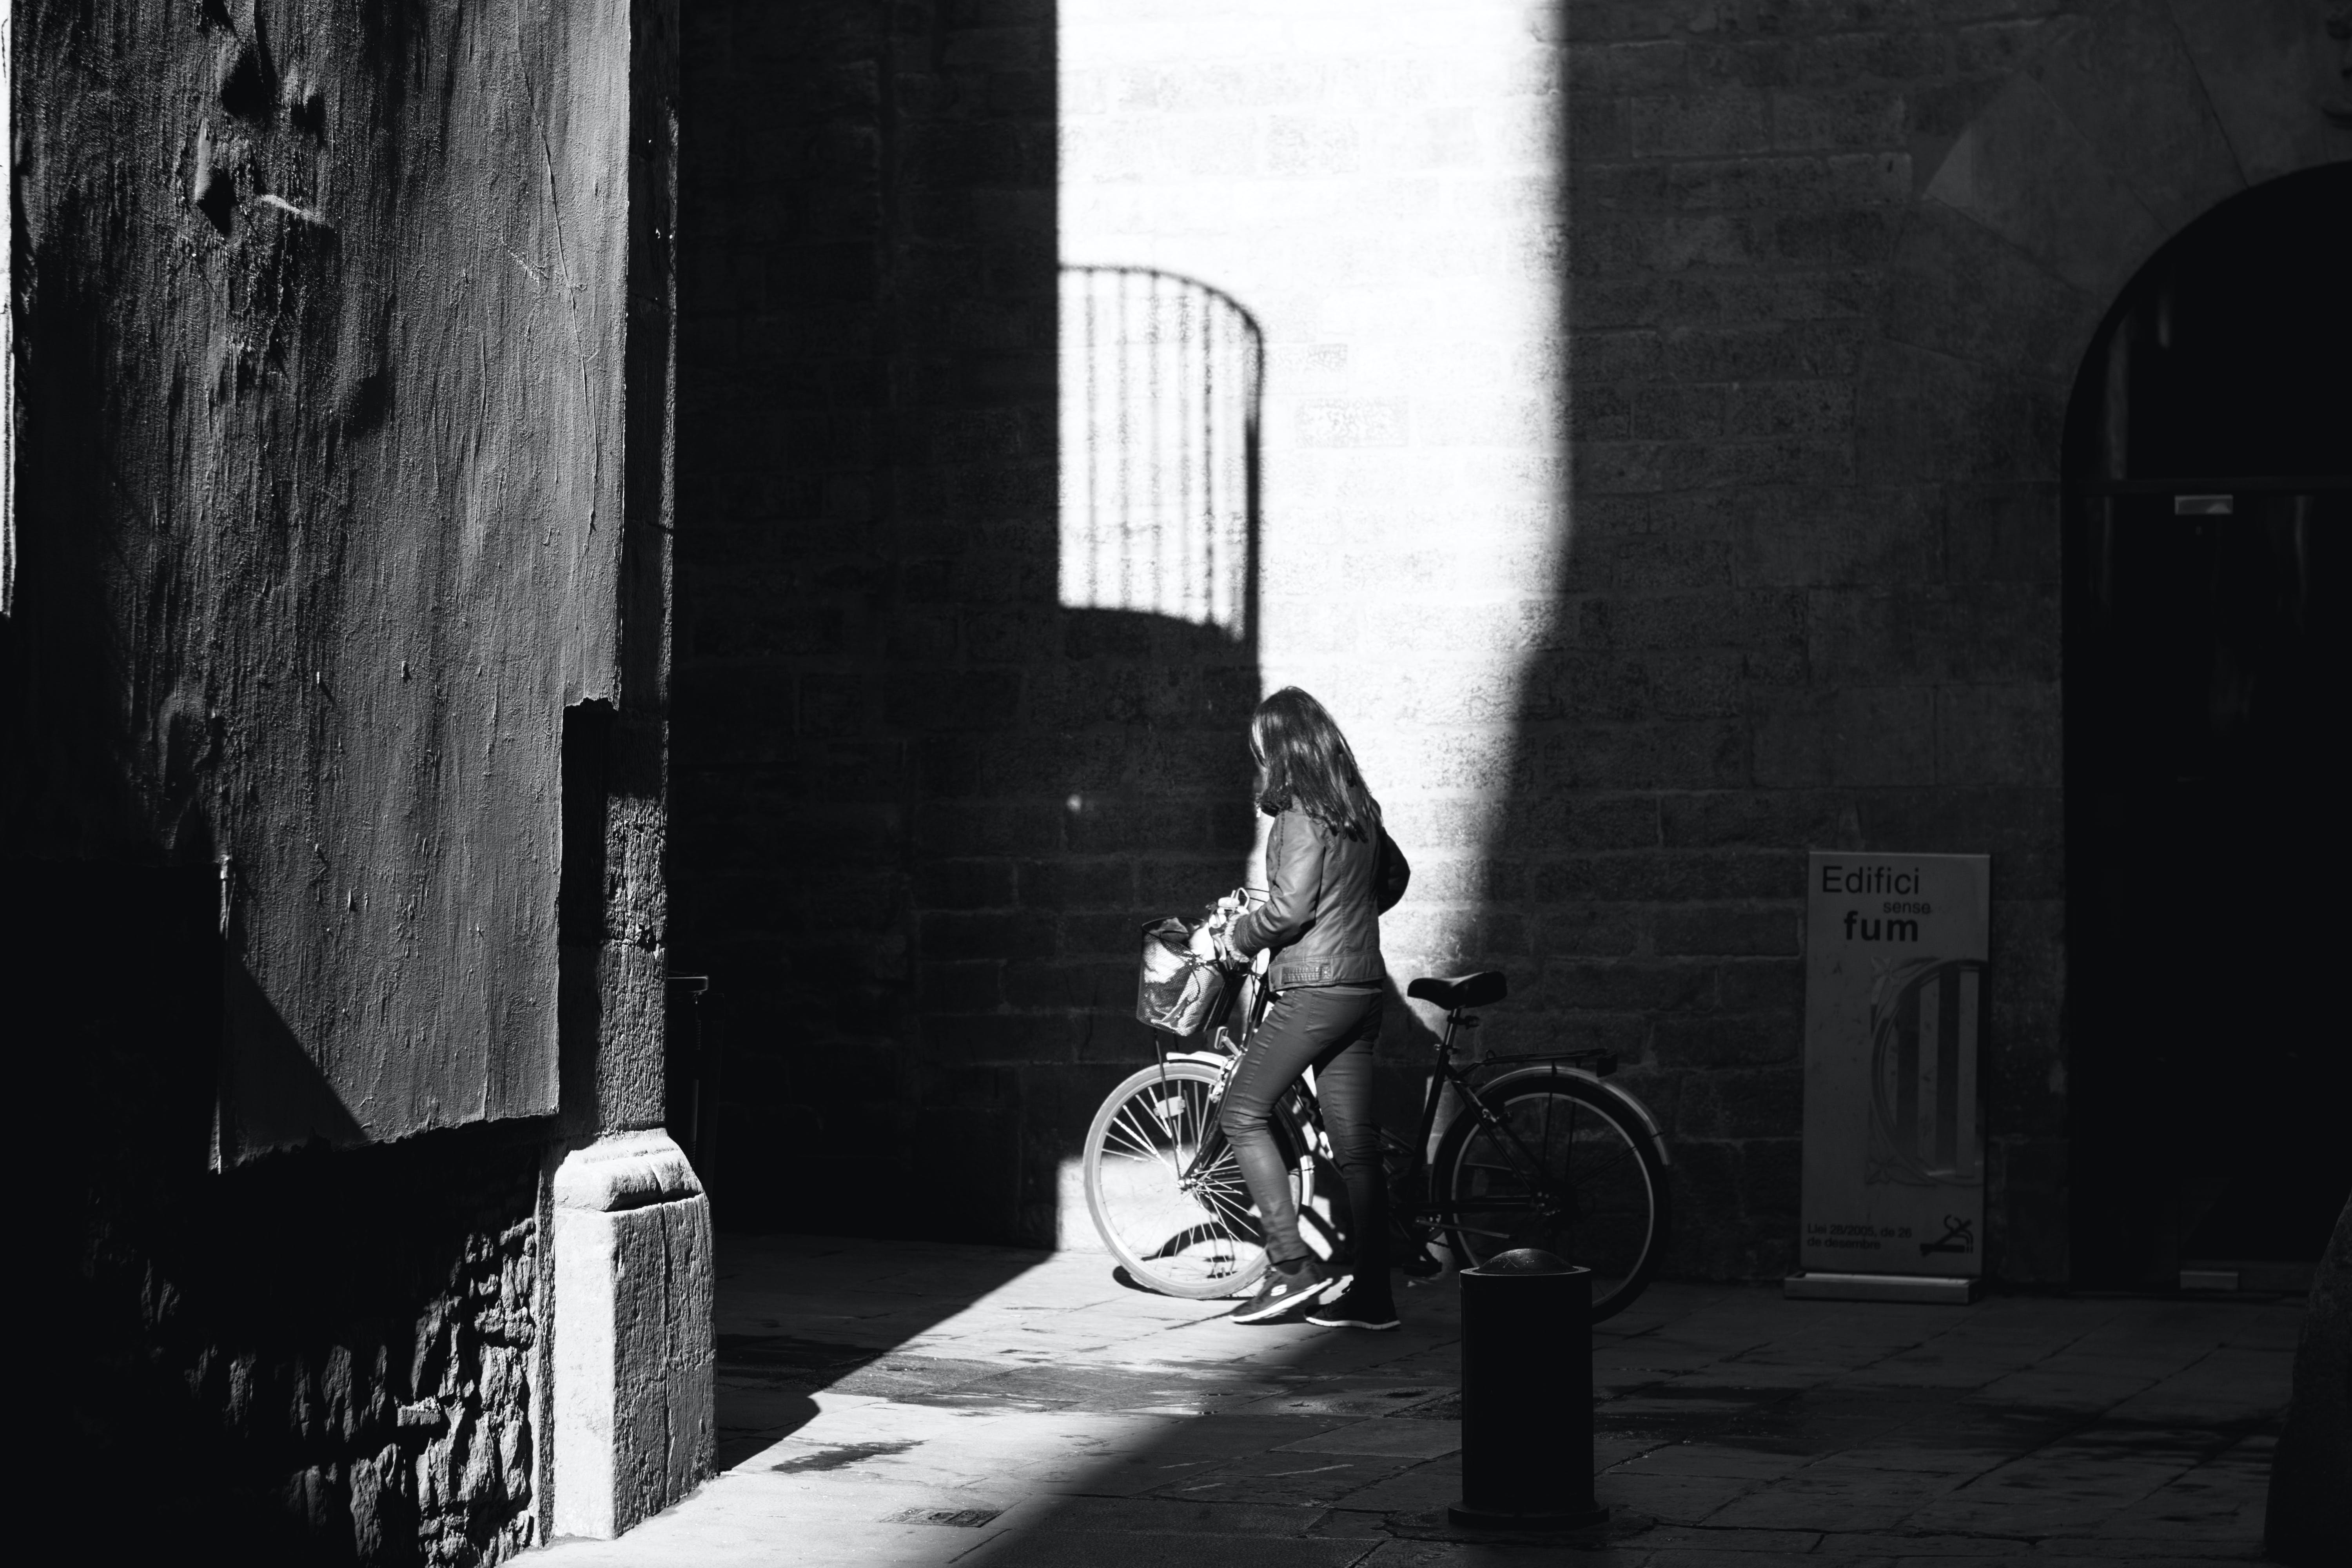 Grayscale Photo of Woman with Her Bicycle